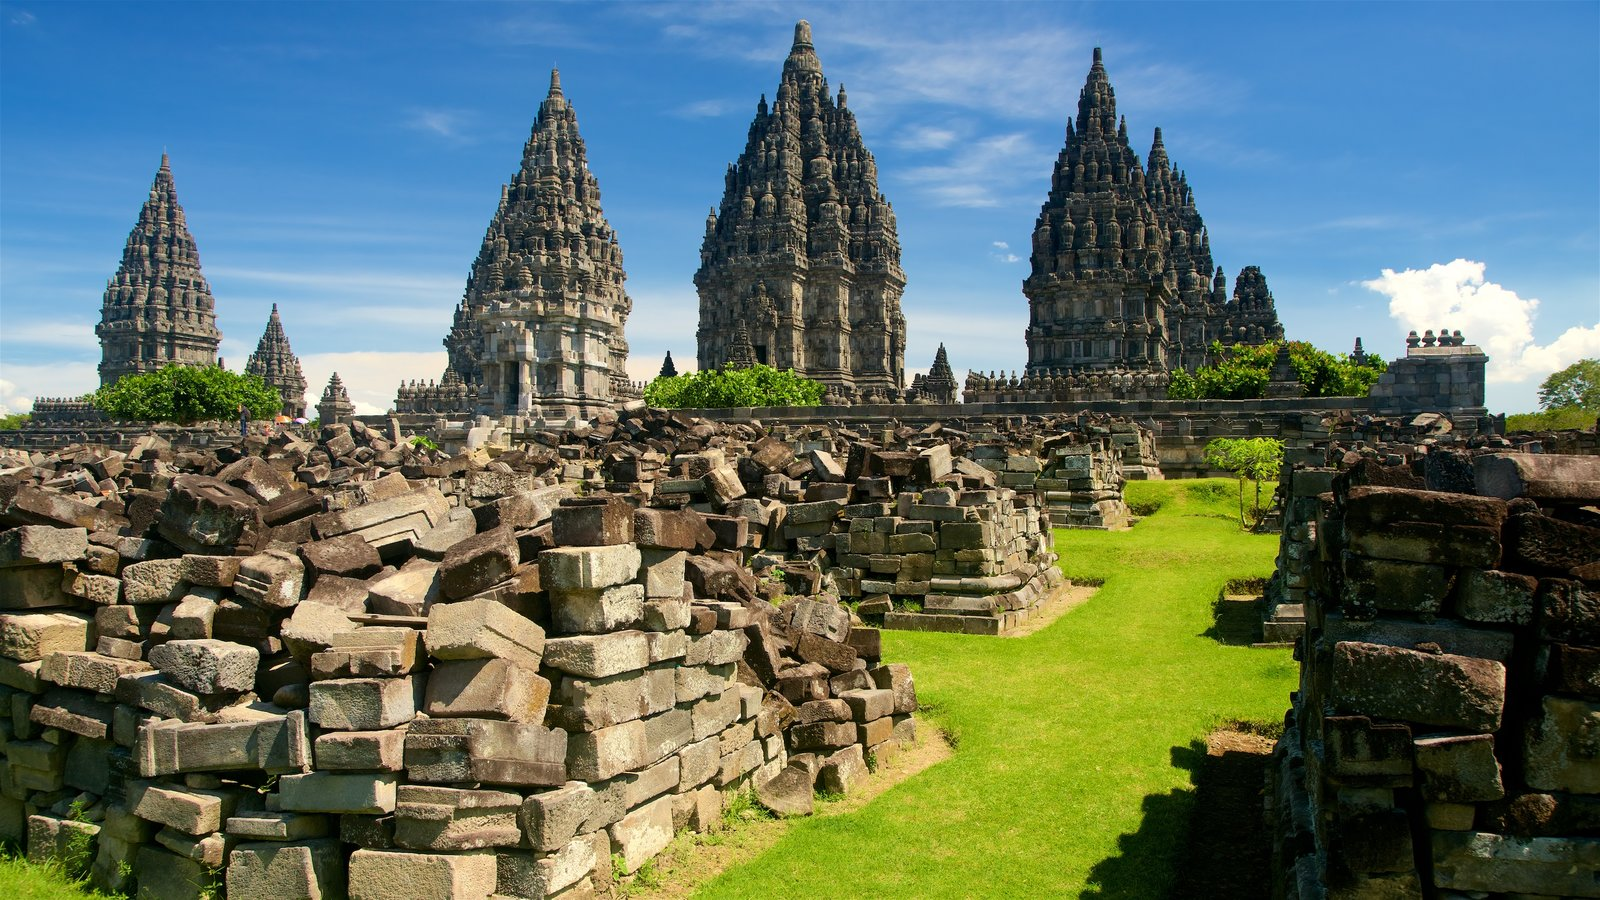 Prambanan Temple showing heritage architecture and building ruins